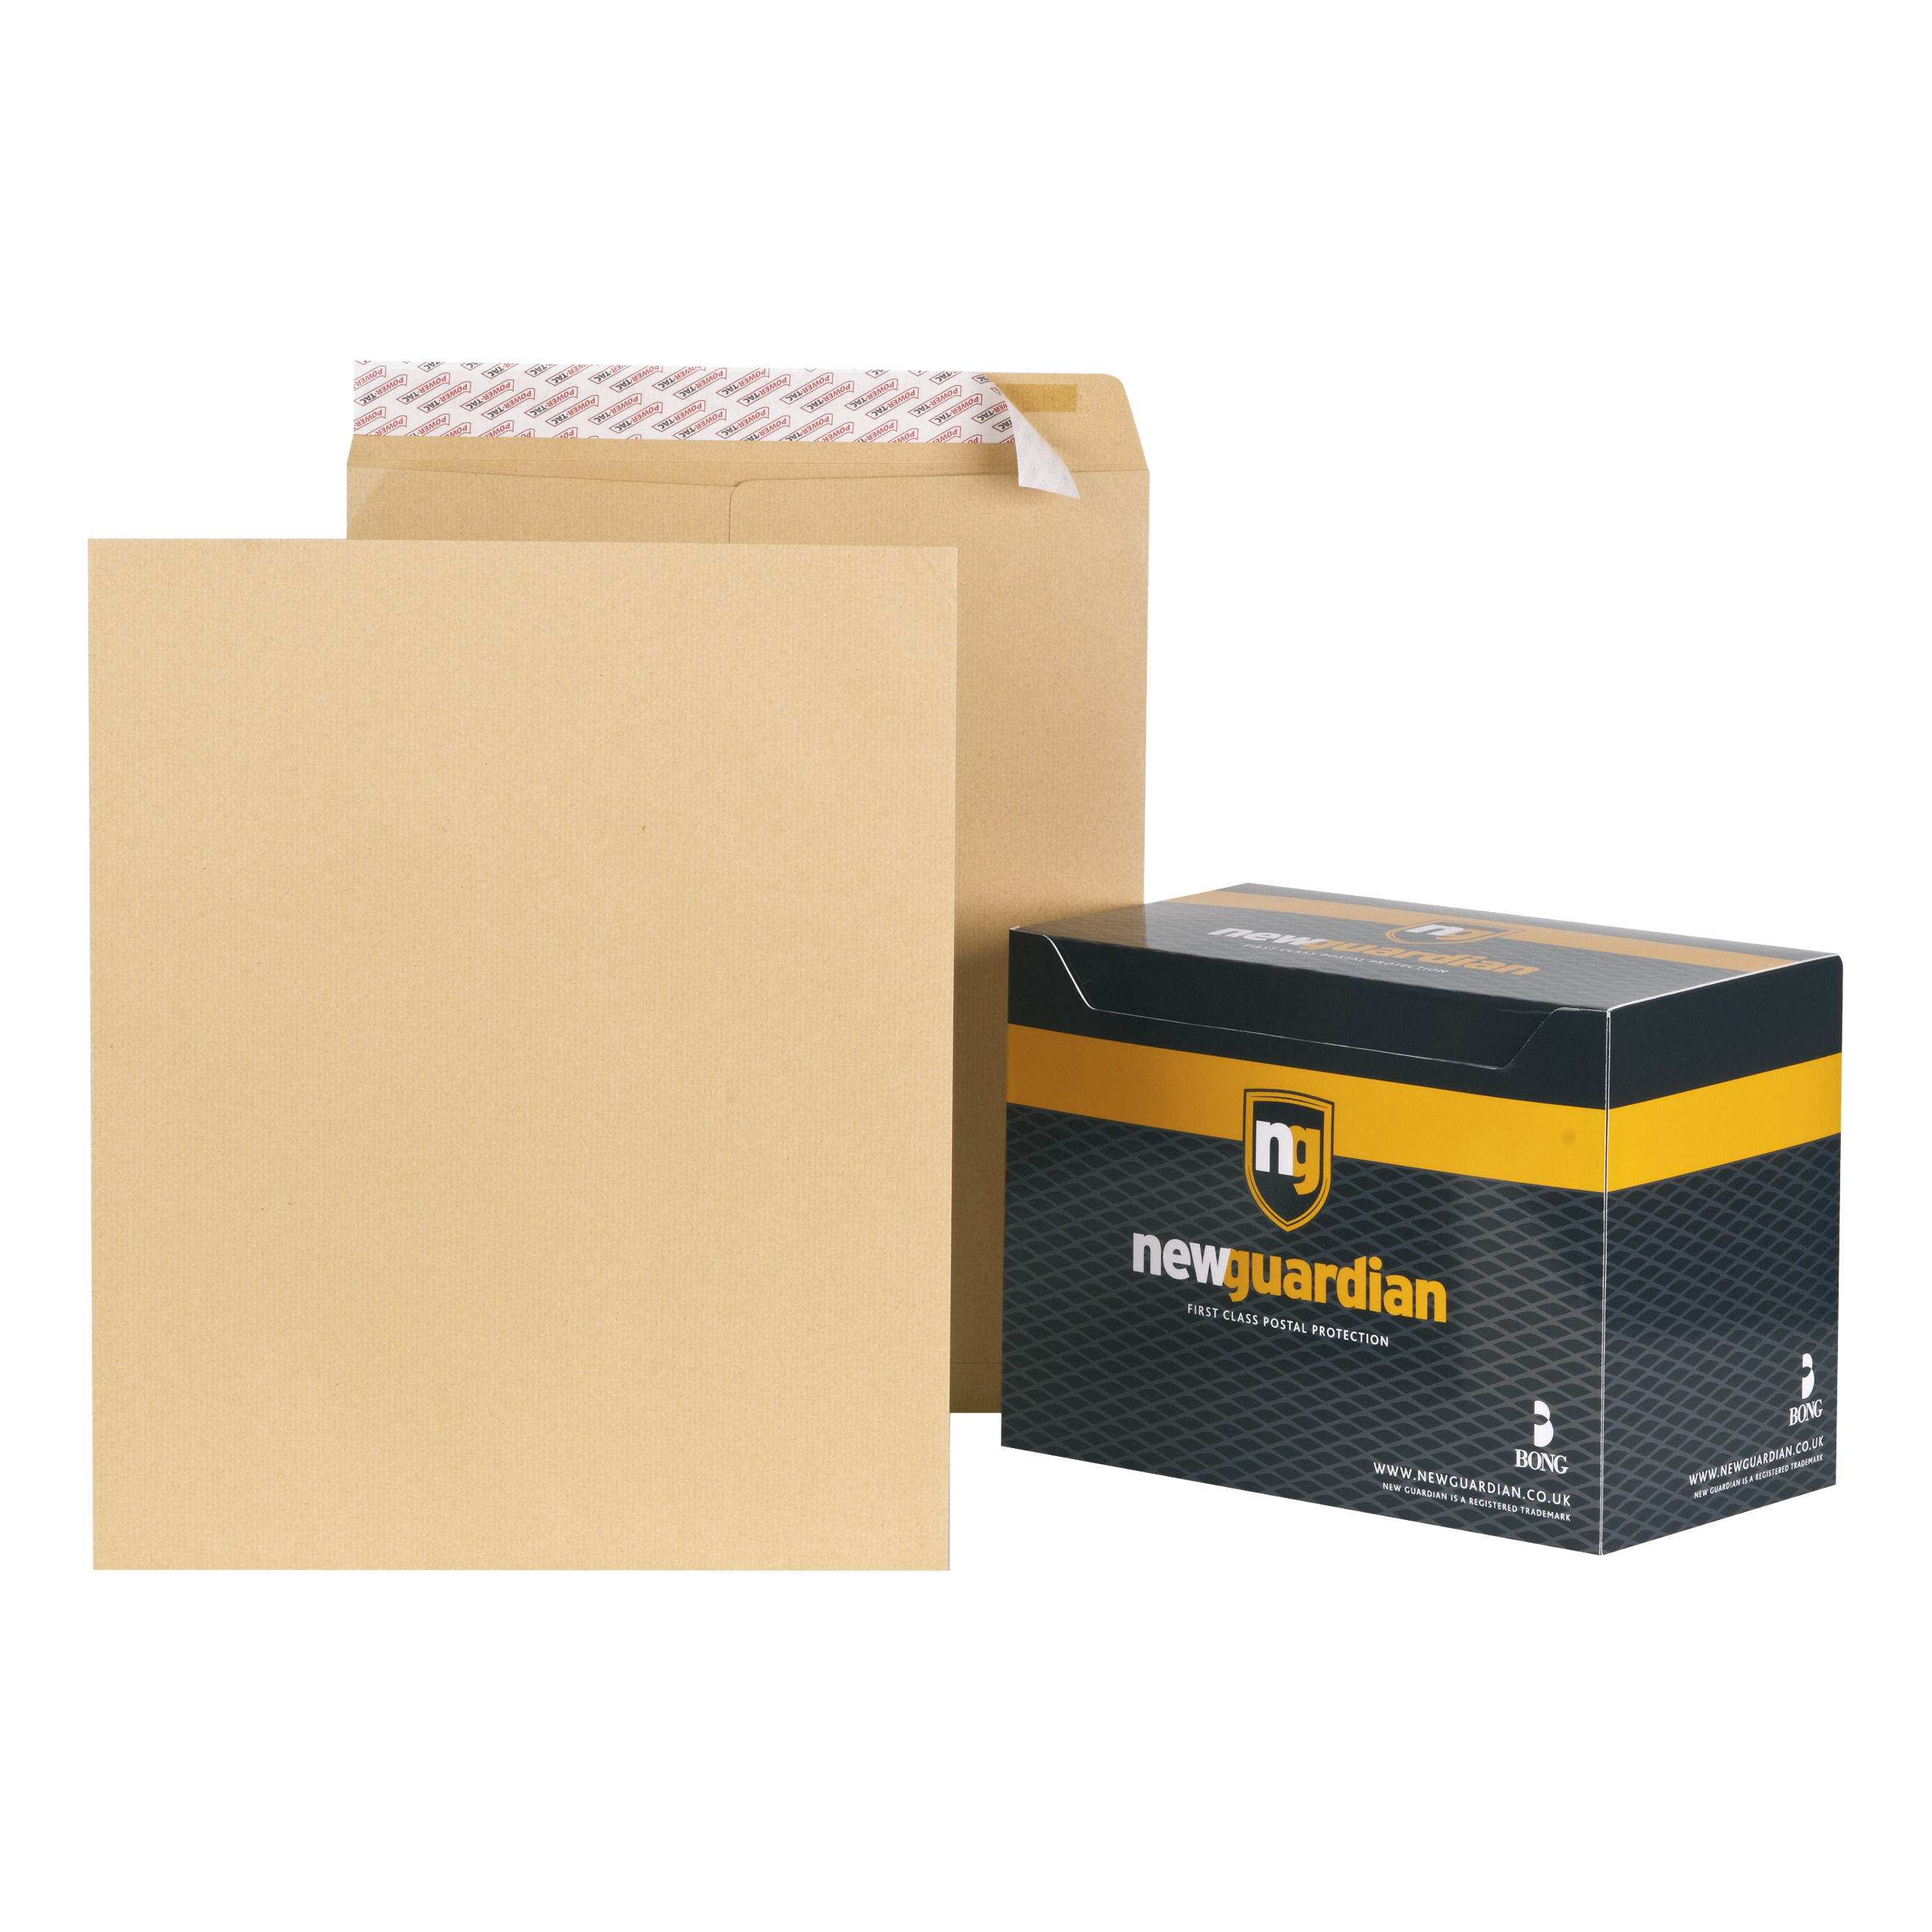 New Guardian Envelopes Heavyweight 444x368mm Pocket L And Seal 130gsm Manilla Ref B27713 Pack 125